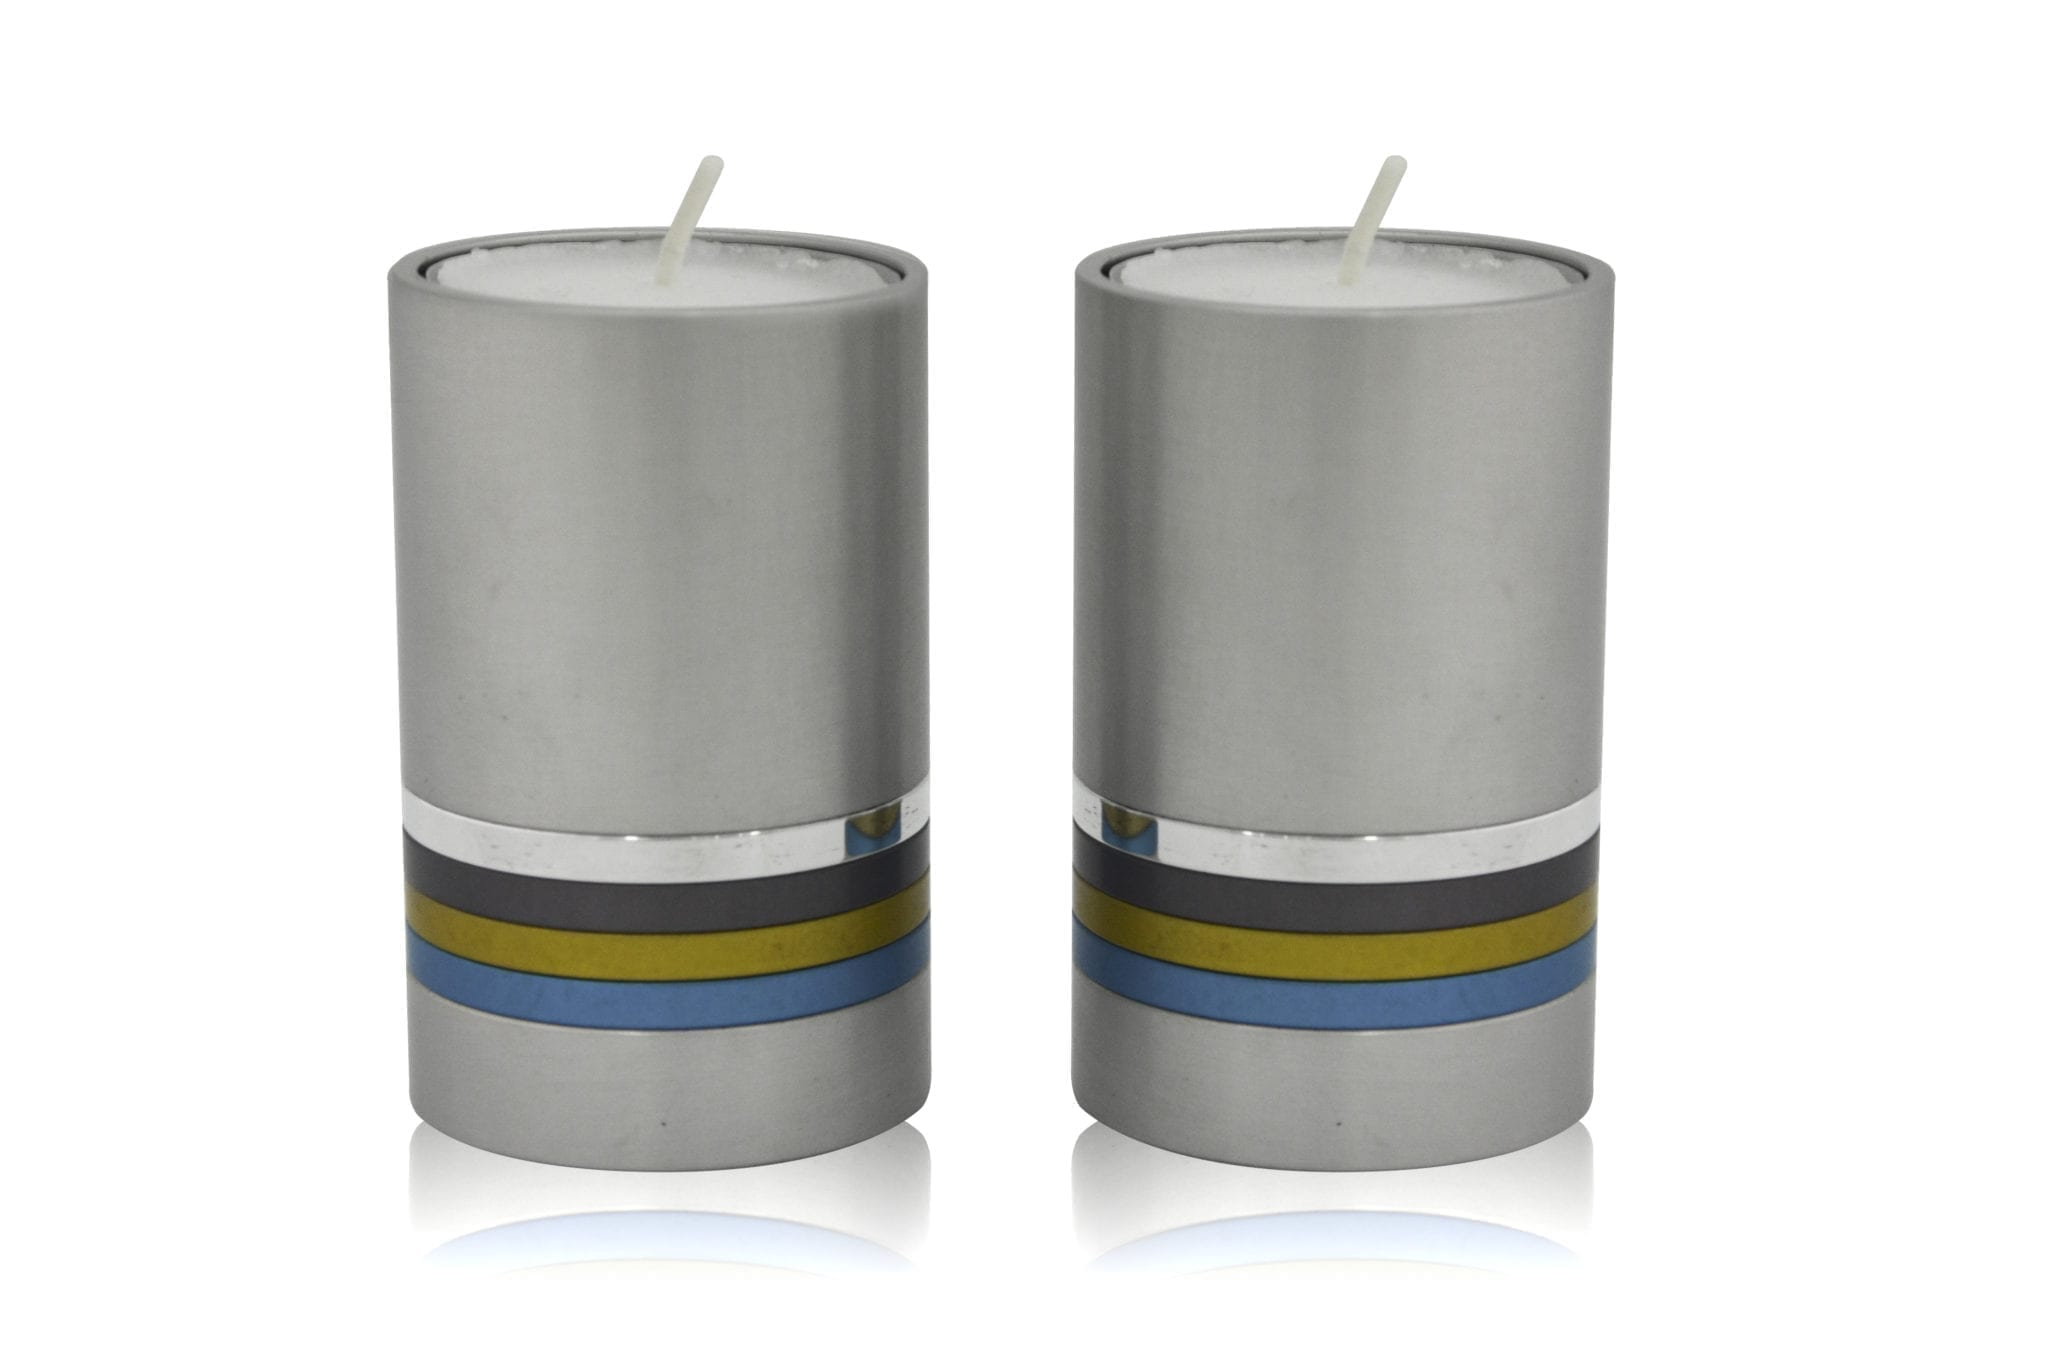 Petite grey cylindrical candlesticks with colorful rings, anodized aluminum Judaica & home decor made in Israel by Nadav Art